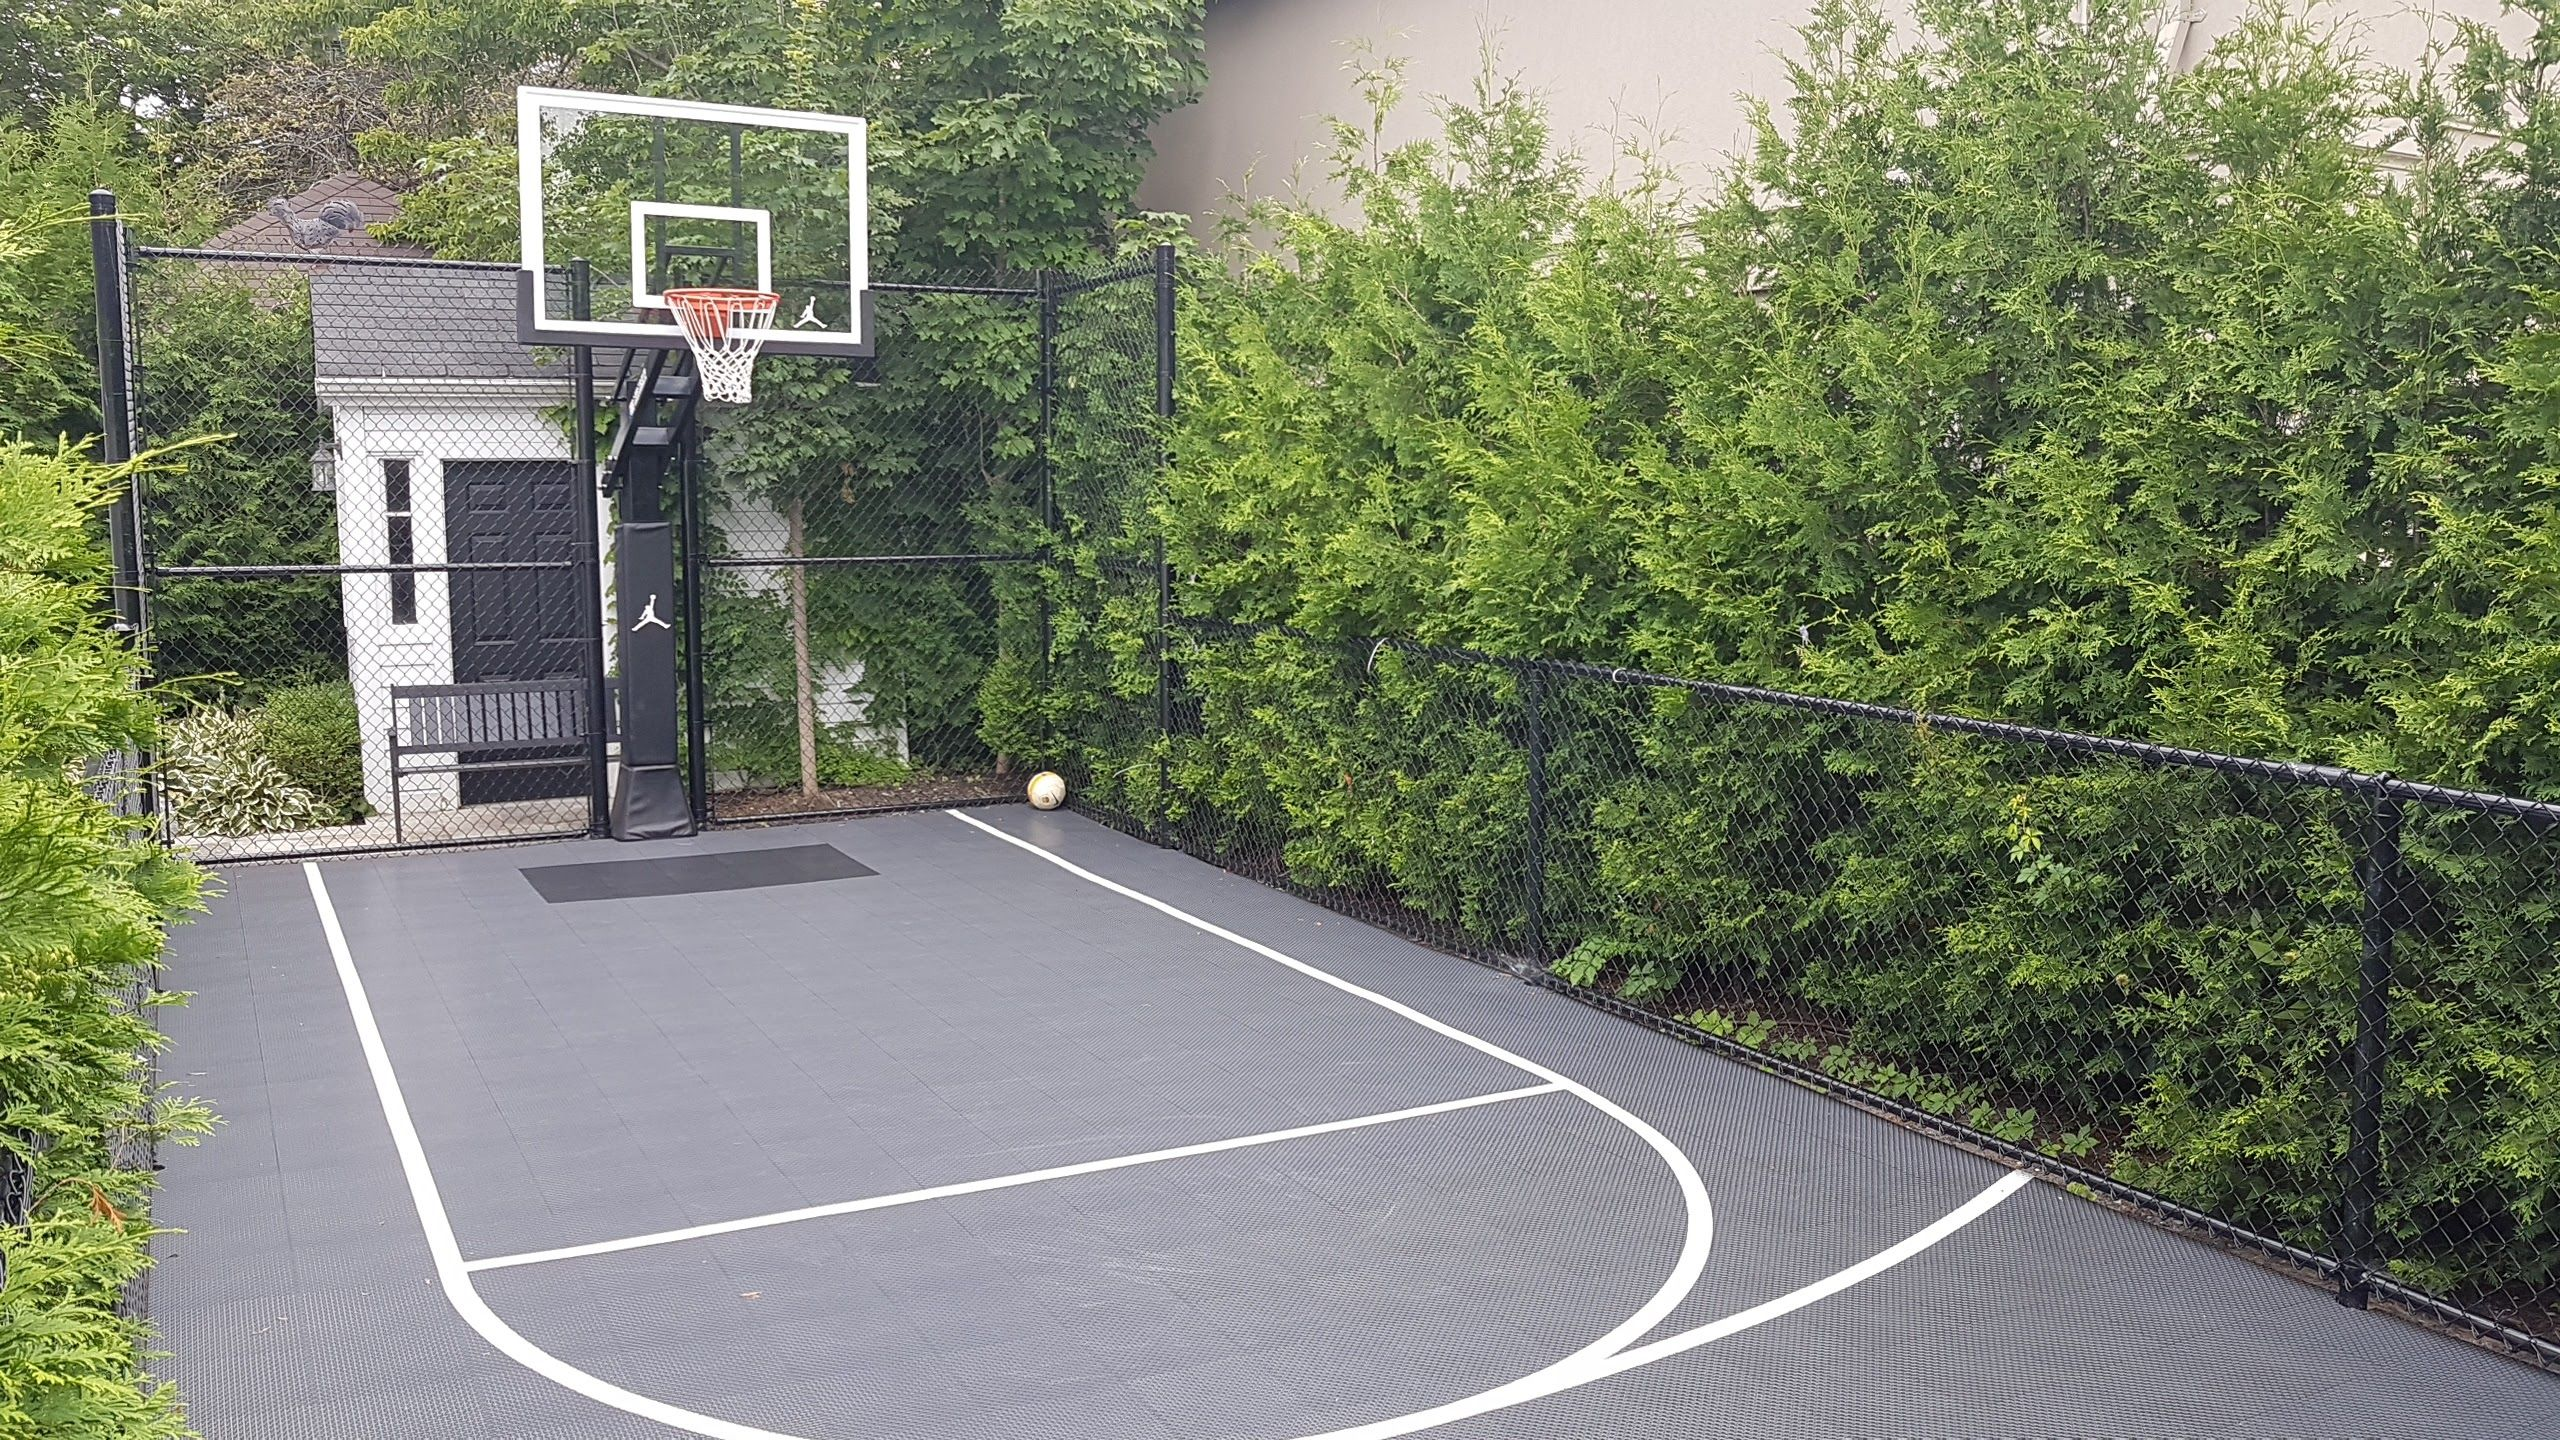 15 X 37 Basketball Court Makes Great Use Of A Side Yard That